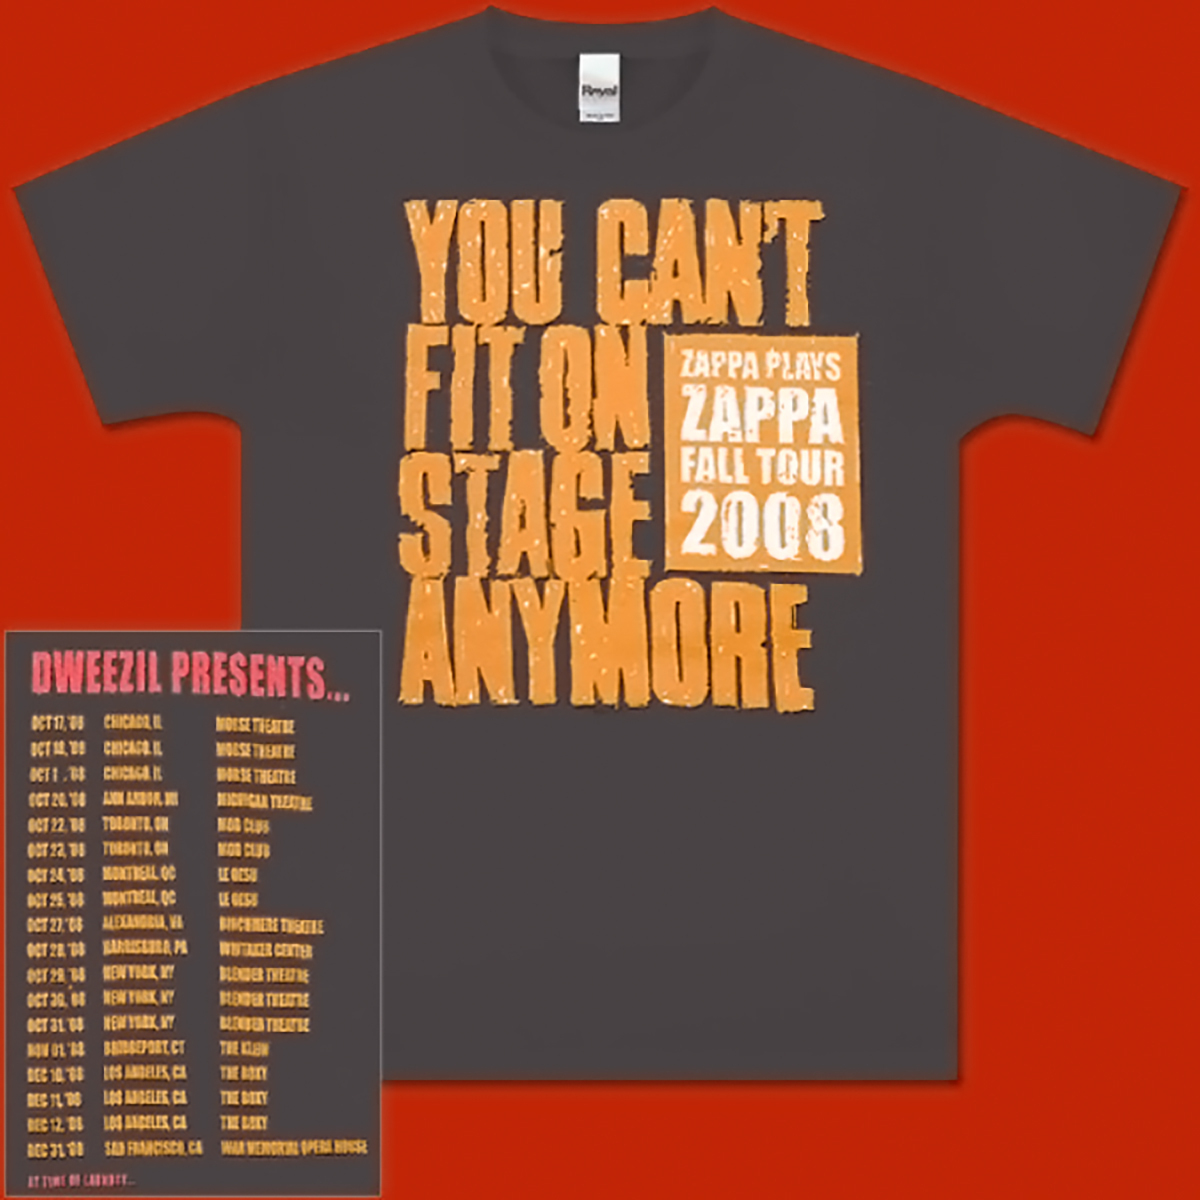 Zappa Plays Zappa - You Can't Fit On Stage Anymore T-Shirt